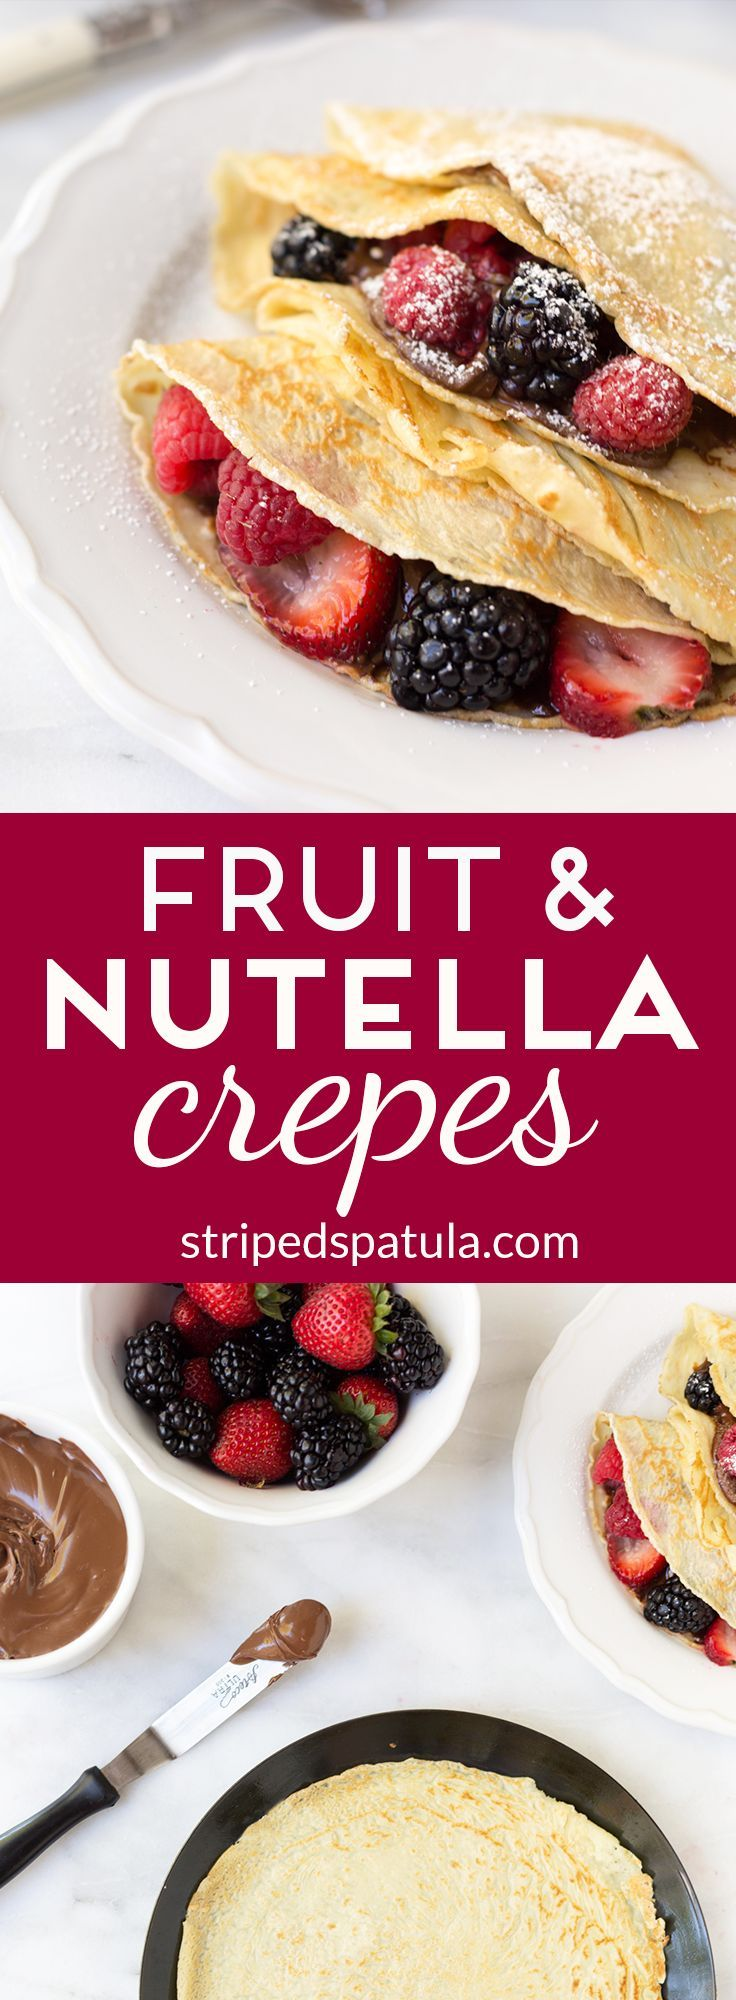 Crepes with Nutella and Fruit are a delicious way to bring a taste of the 2016 New York Wine and Food Festival home! Sponsored by ShopRite.